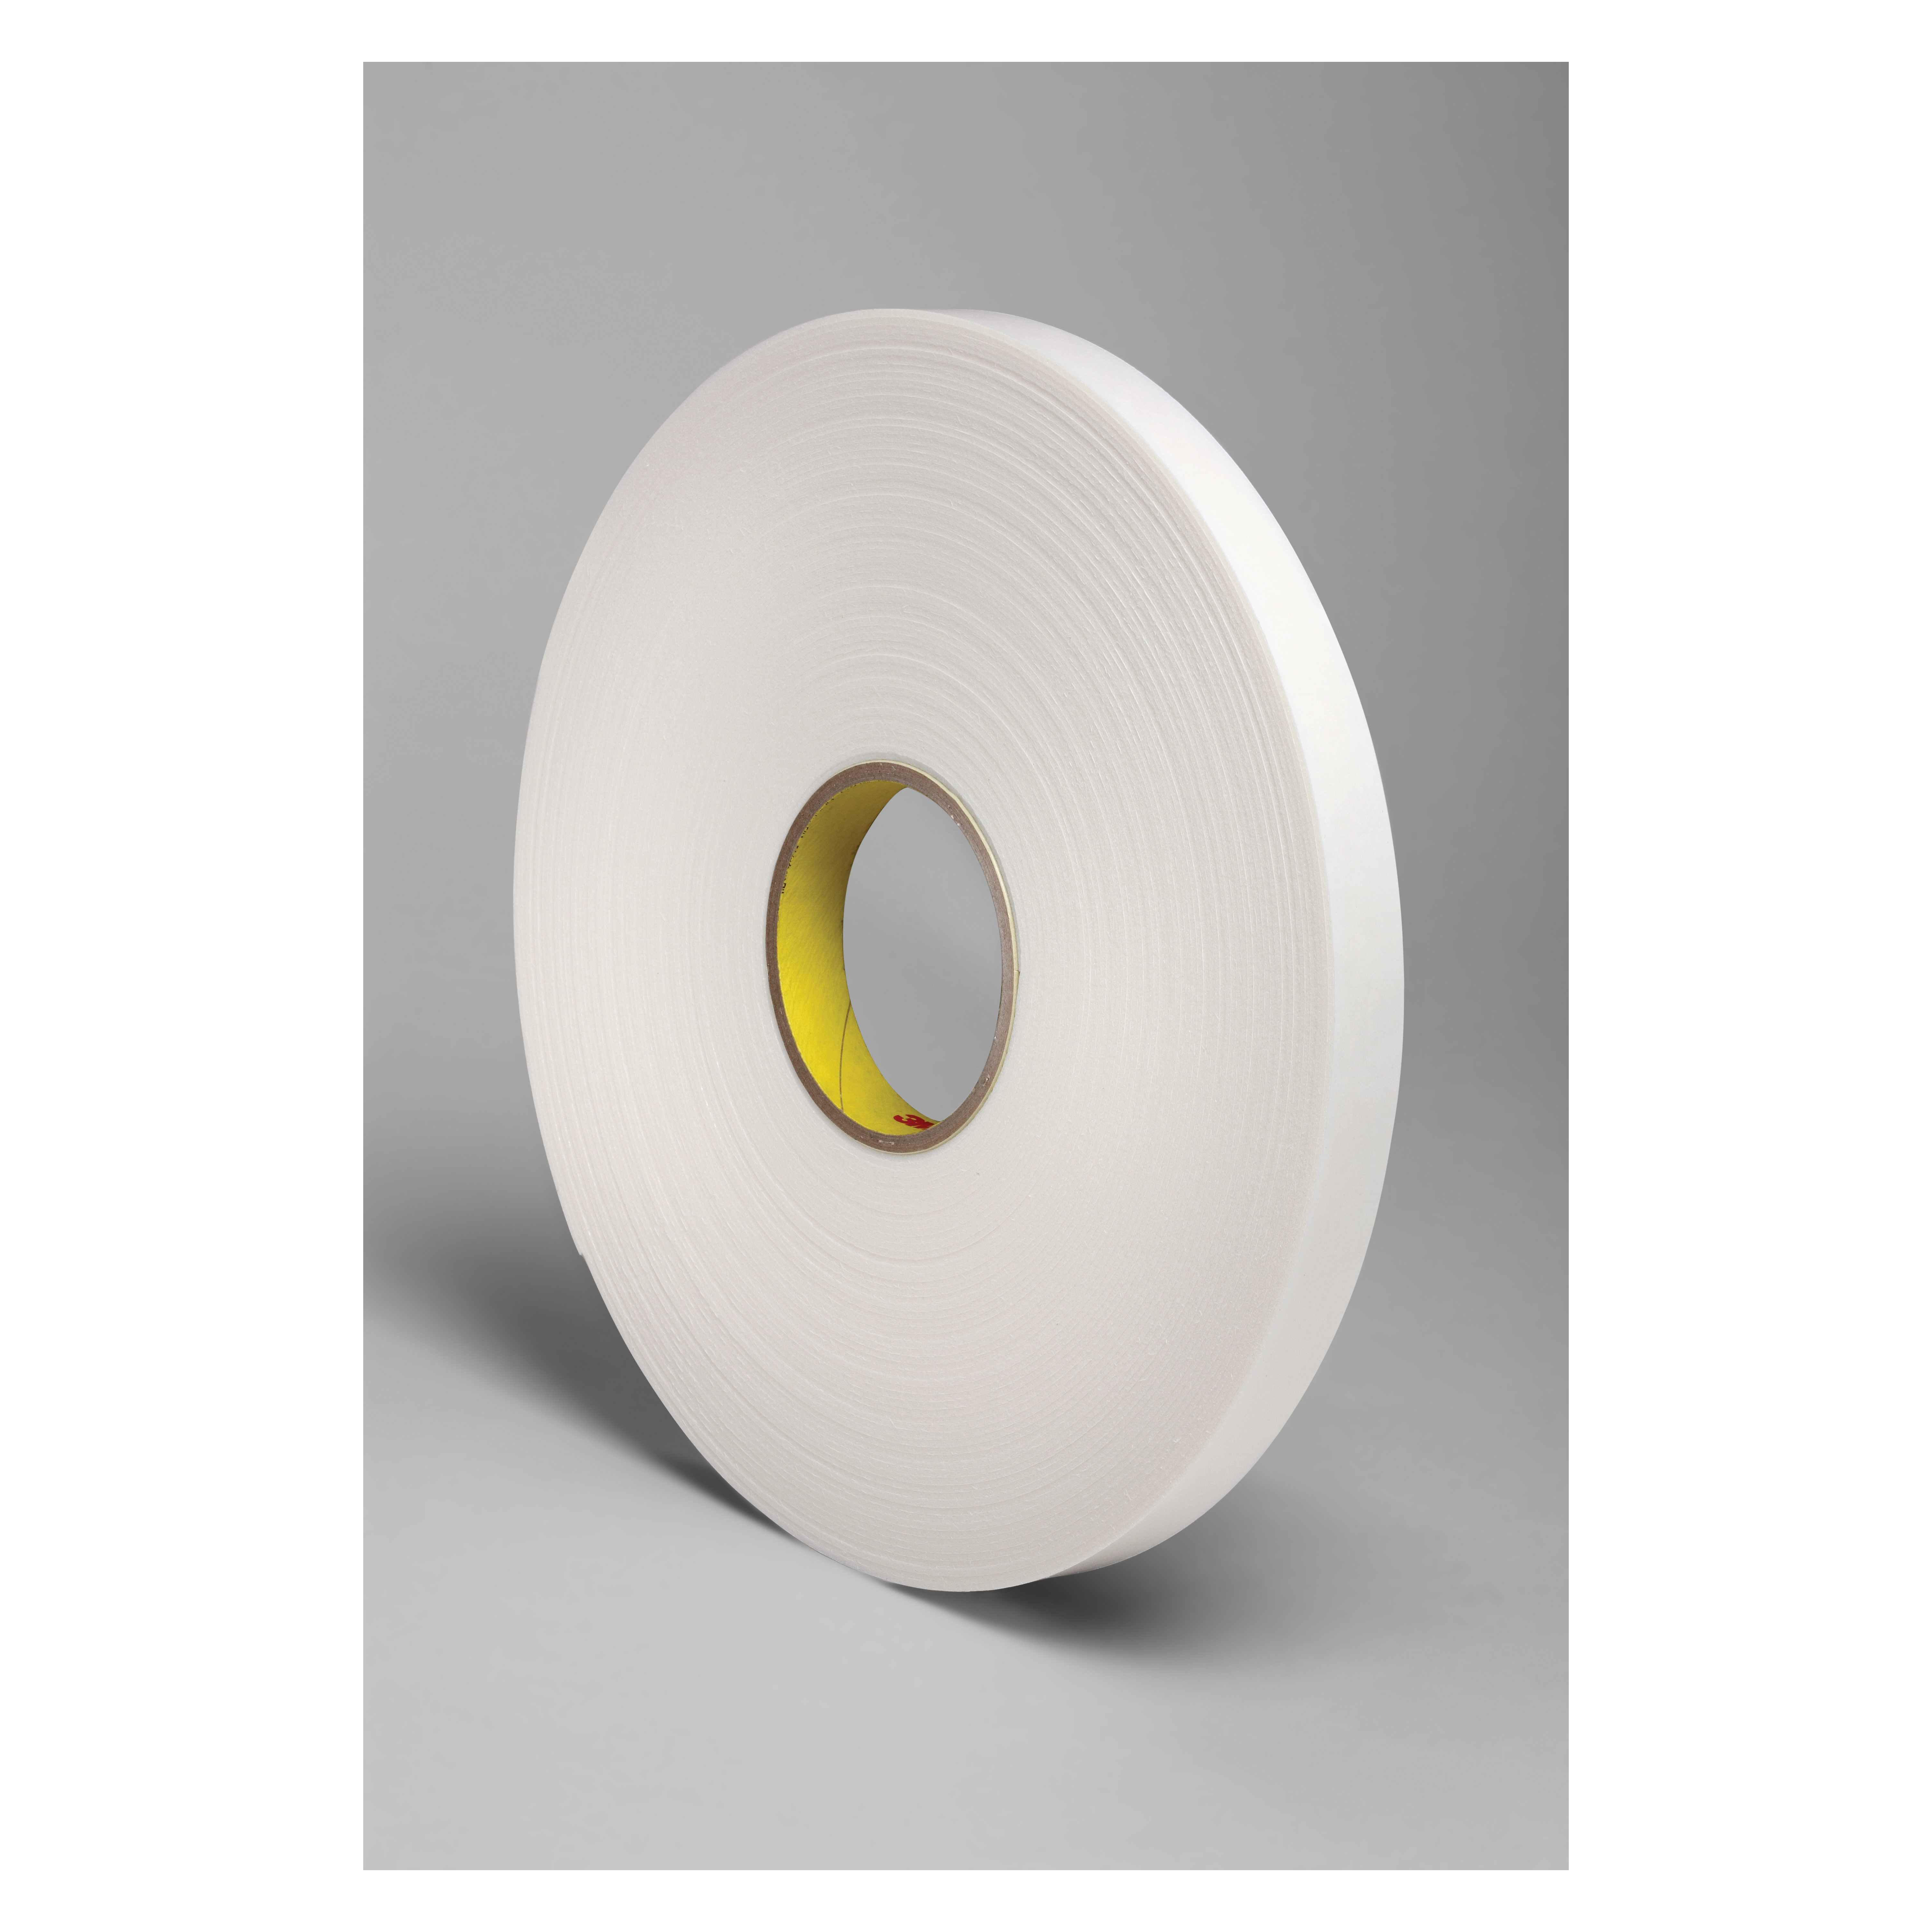 3M™ 021200-24303 4466 Double Coated Tape, 36 yd L x 3/4 in W, 62 mil THK, Rubber Adhesive, Polyethylene Foam Backing, White